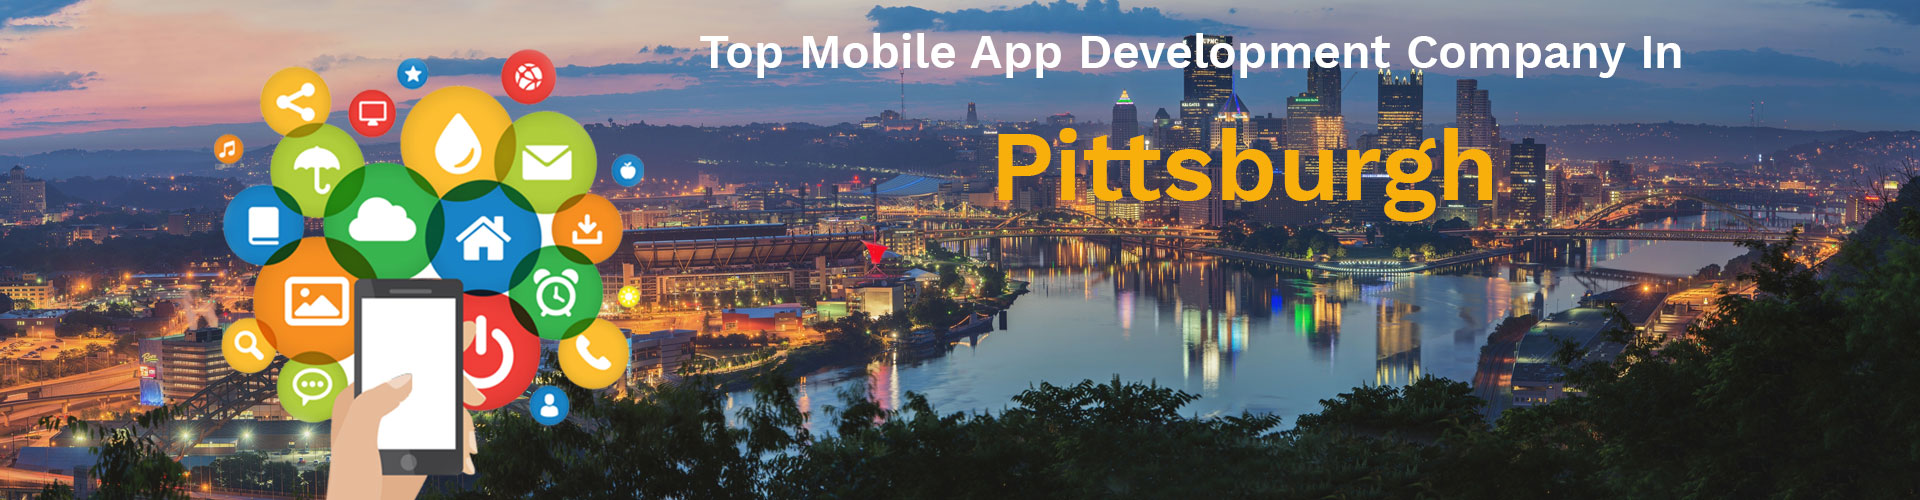 mobile app development company pittsburgh